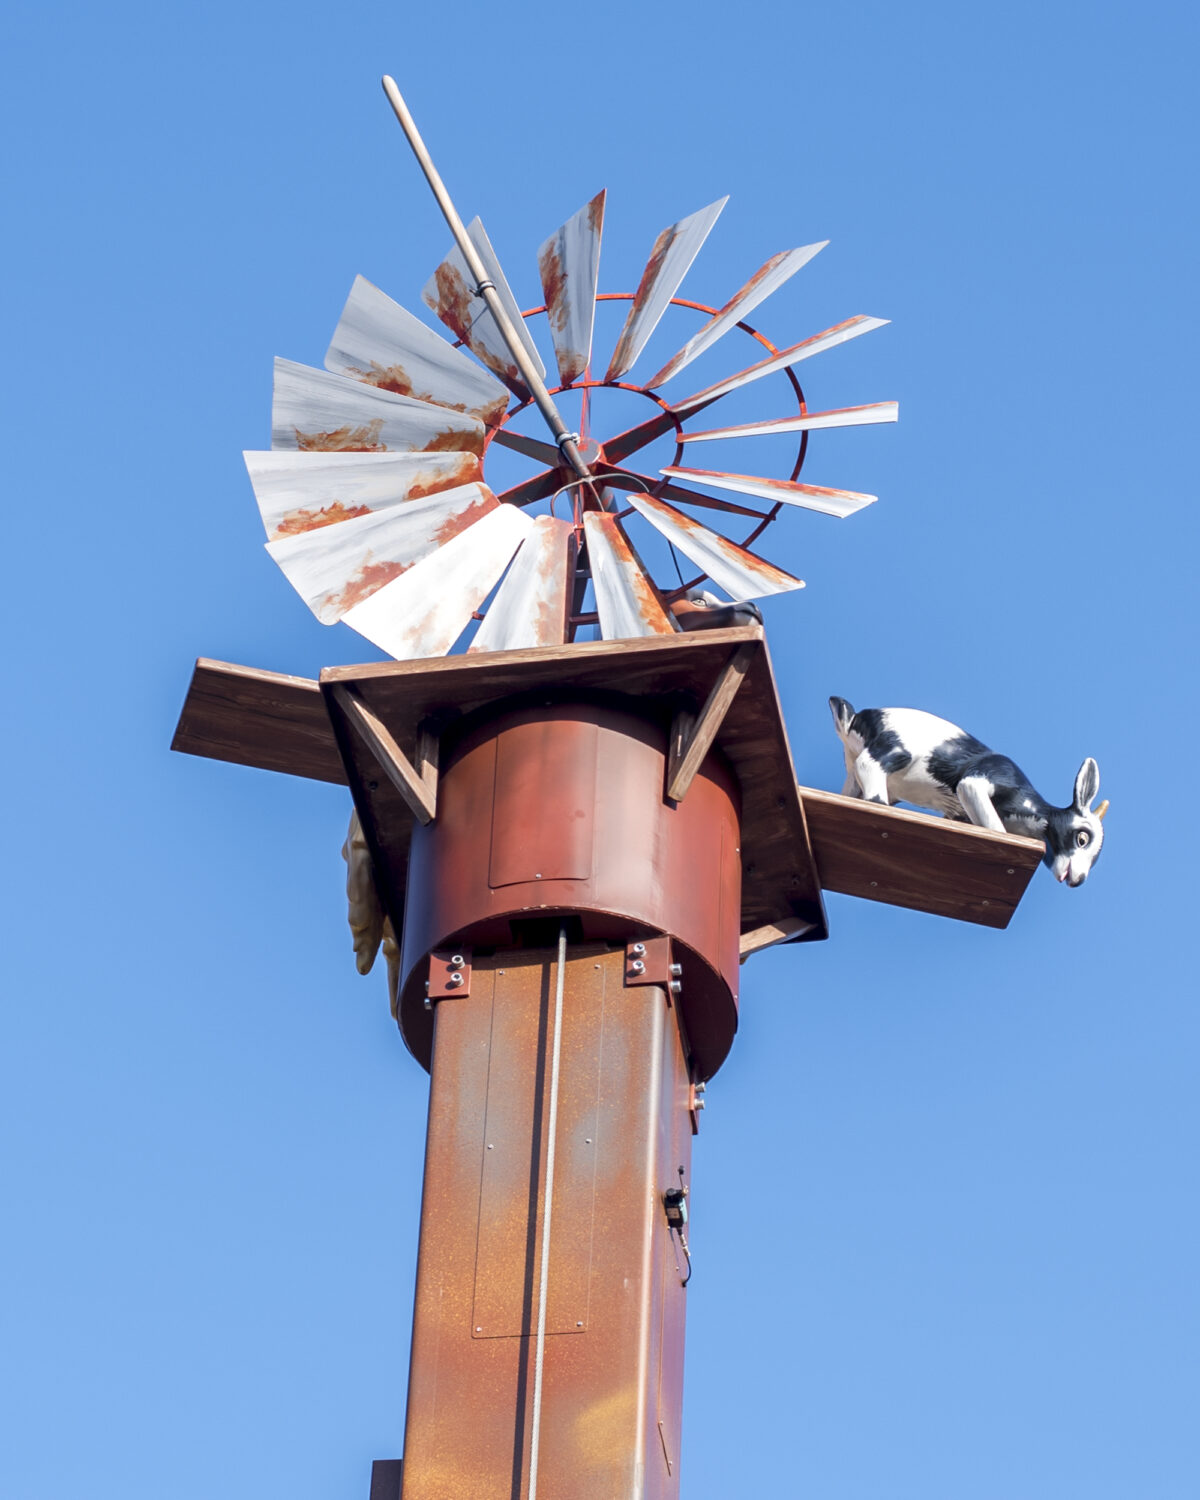 Image shows the Windmill blades of the Windmill Falls ride at Tornado Springs, Paultons Park, Hampshire.